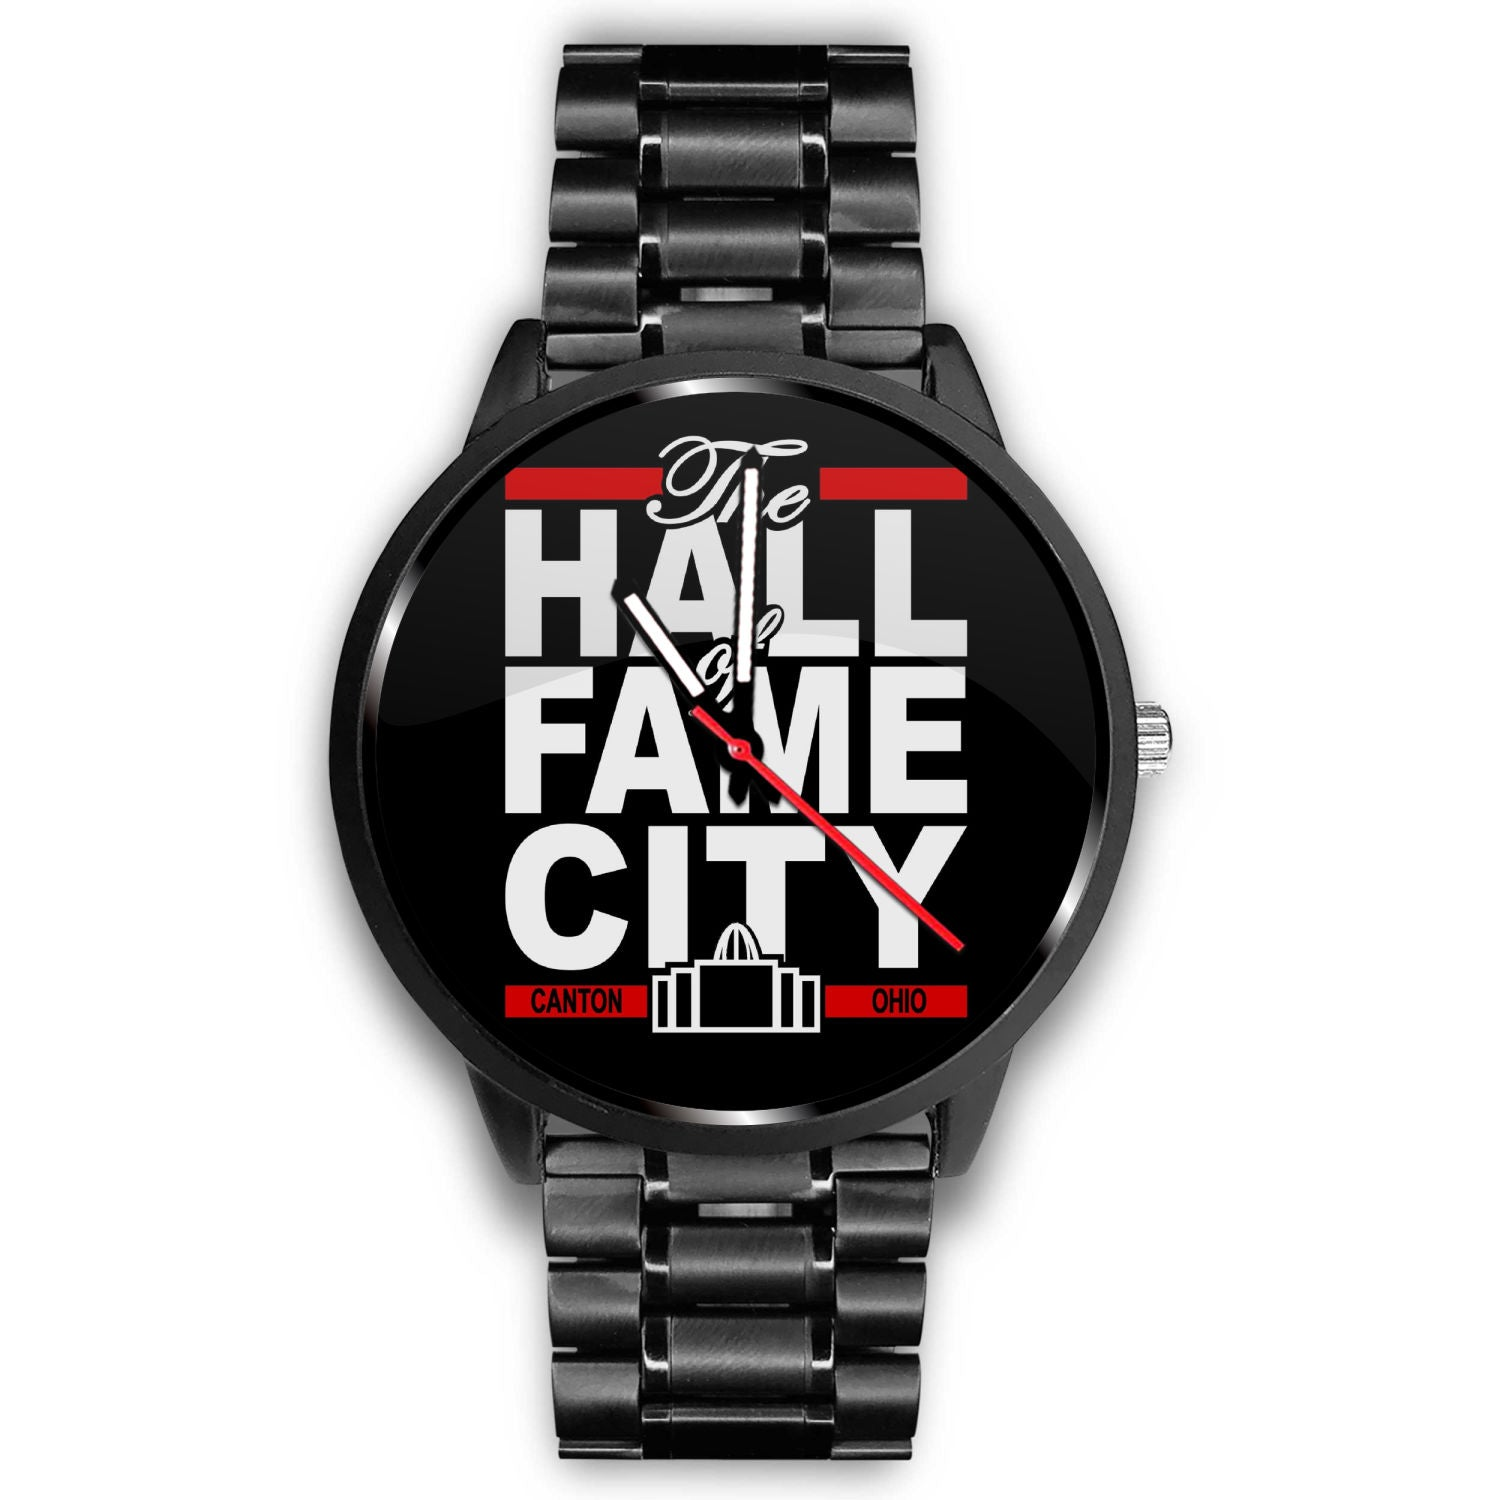 THE HALL OF FAME CITY Watch